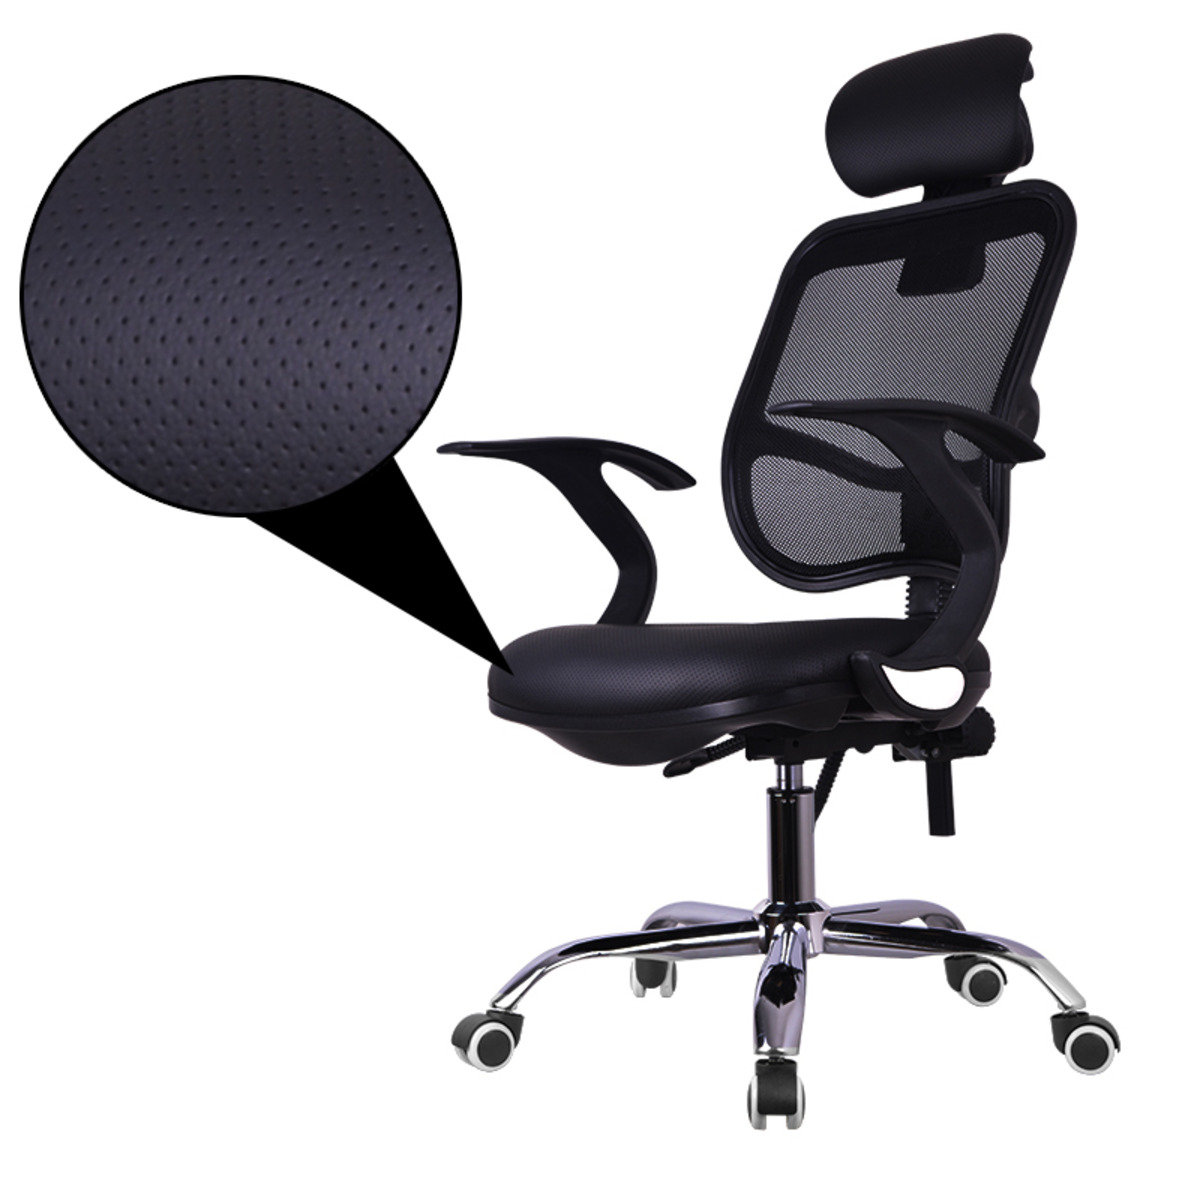 Ergonomic PU Office Chair with Headrest Mr-137B